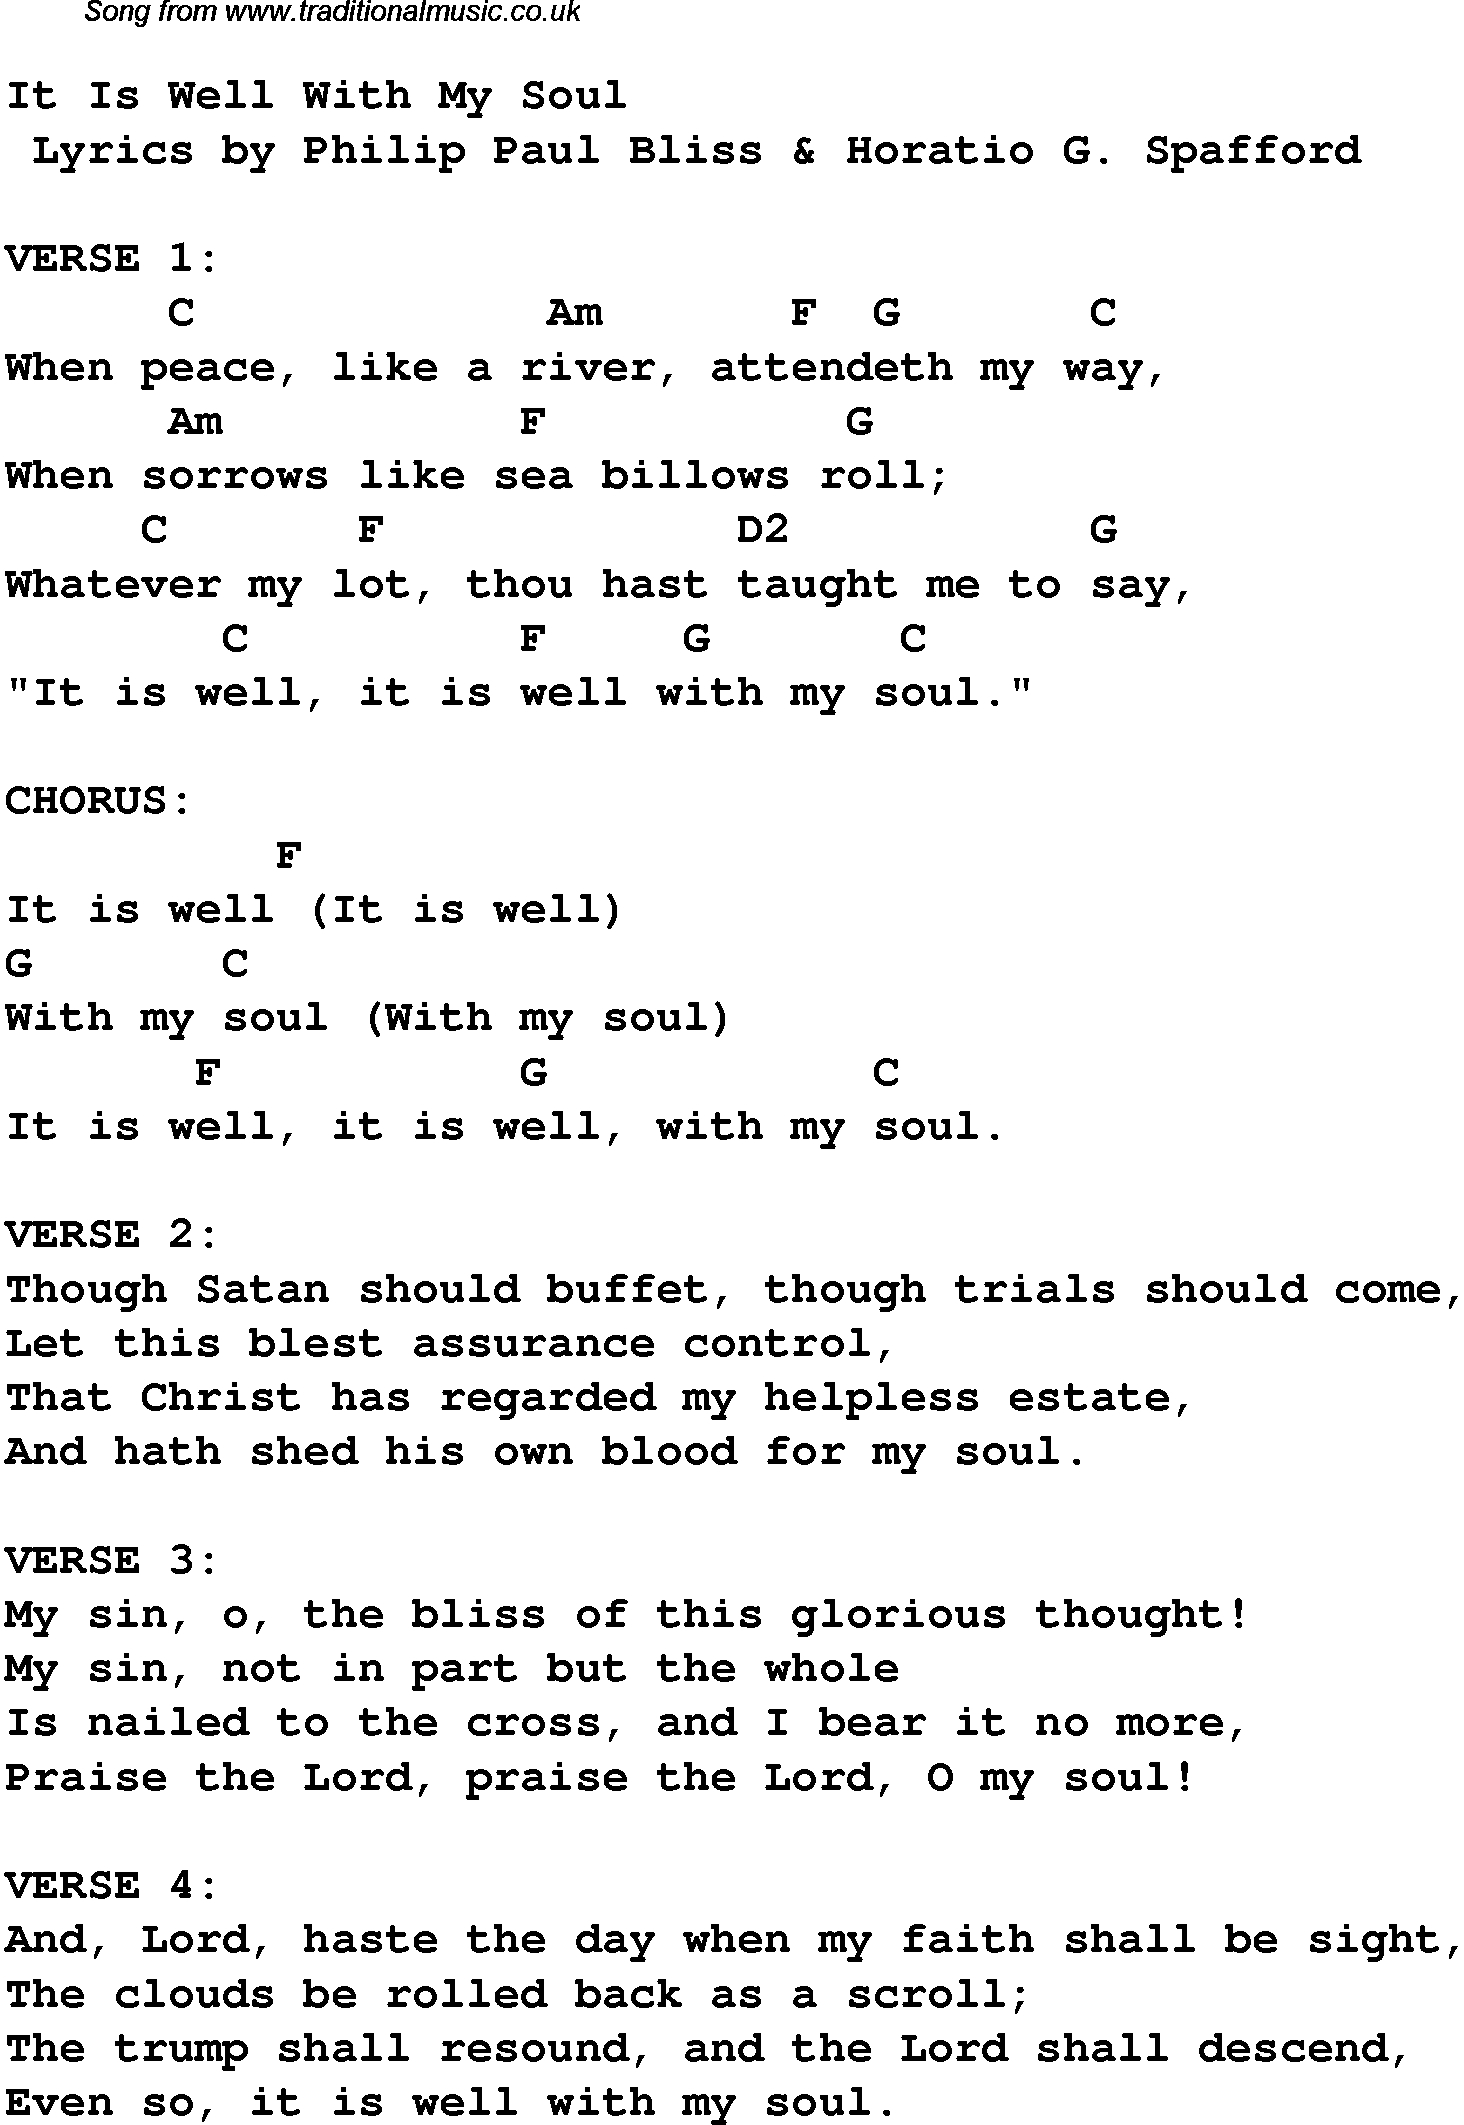 It Is Well Chords It Is Well With My Soul Christian Gospel Song Lyrics And Chords